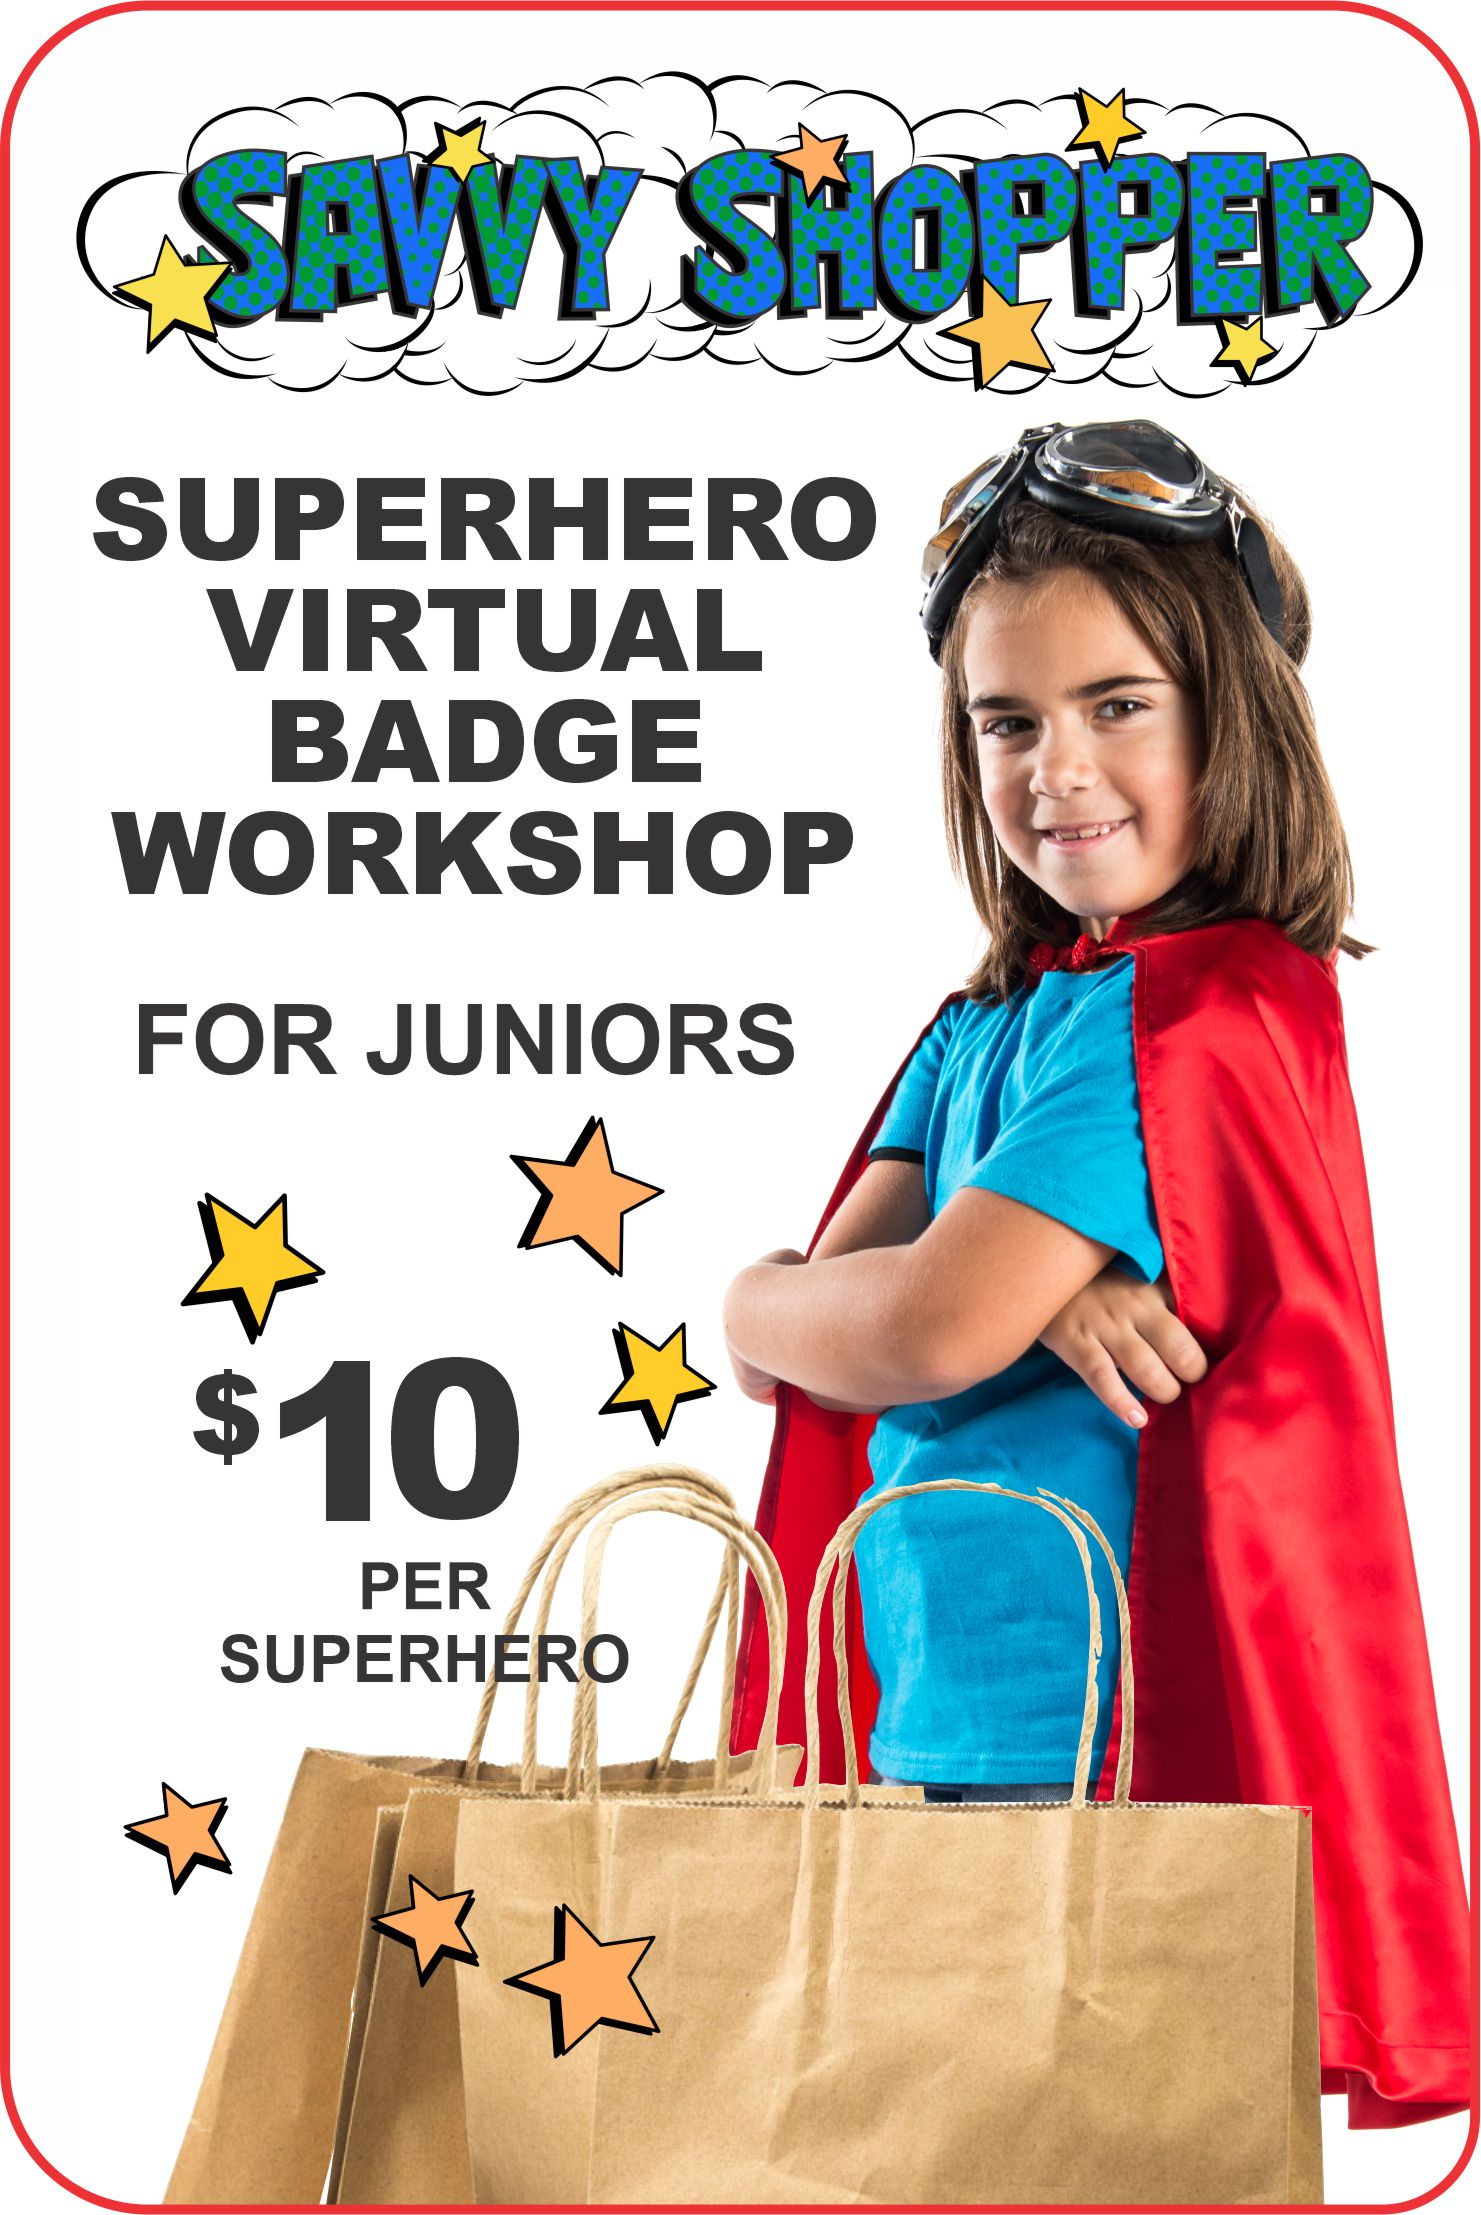 Join us online for a 1 hour virtual workshop where your girls will learn about being a savvy shopper! #makingfriends #virtualclass #savvyshopper #patchprogram #virtual #onlineclass #virtualworkshop #onlinegirlscouts #virtualscouts via @gsleader411